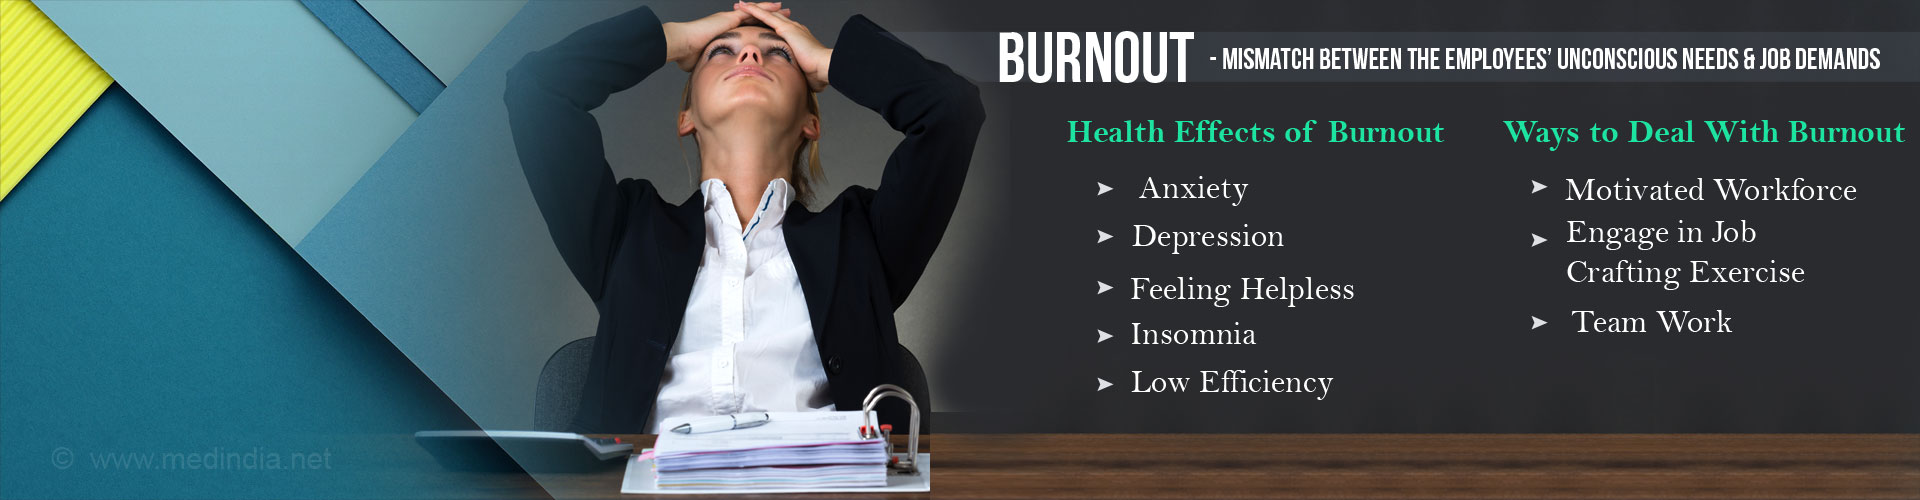 Burnout is the Result of Stress Due To Mismatch Of Employee Needs & Job Demands